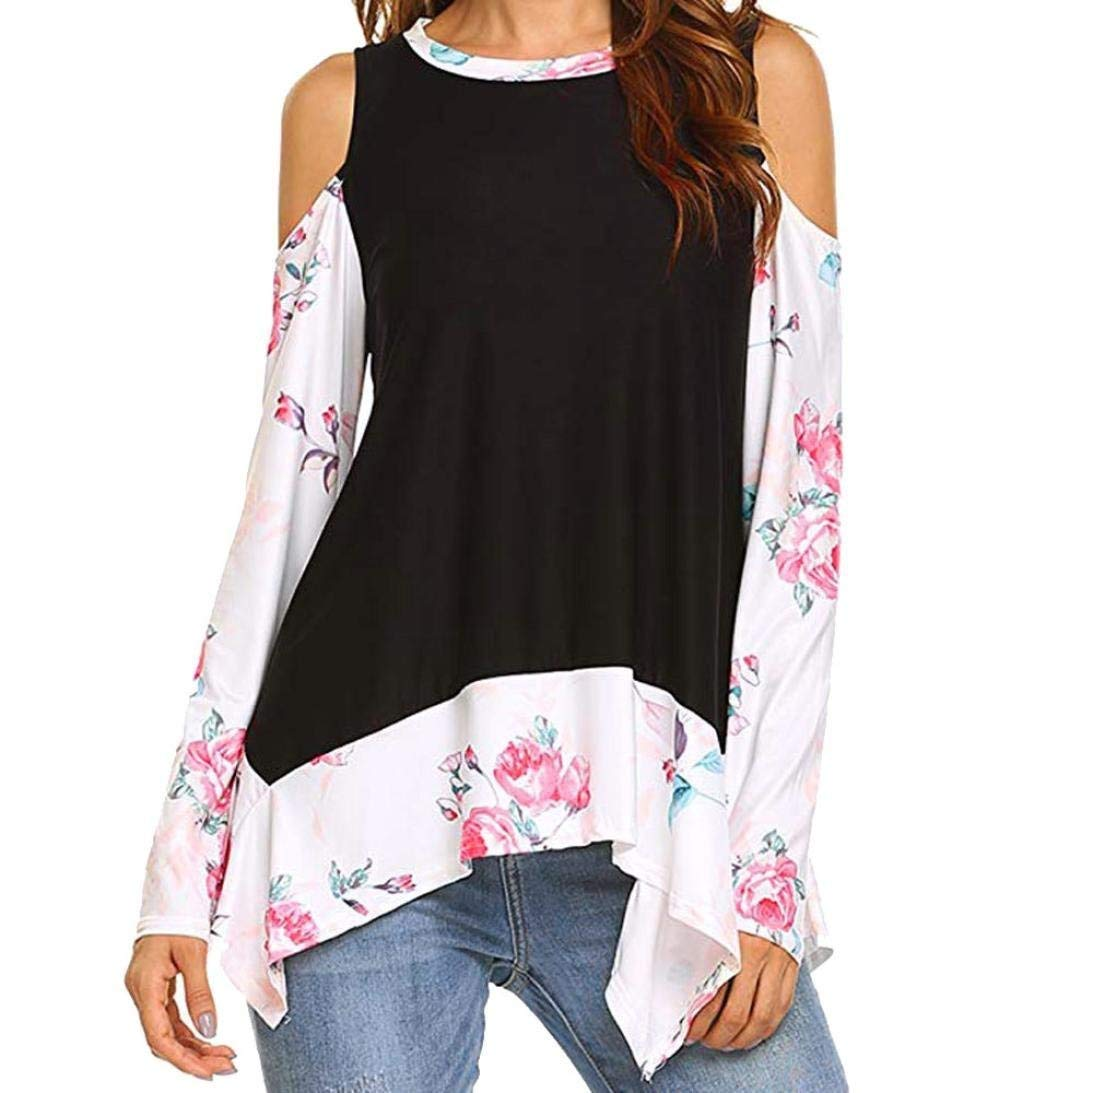 Scaling ♥T Shirts for Women♥Tops for Women Womens Floral Prints Long Sleeve Cold Shoulder Tunics T-Shirt Blouse Tops